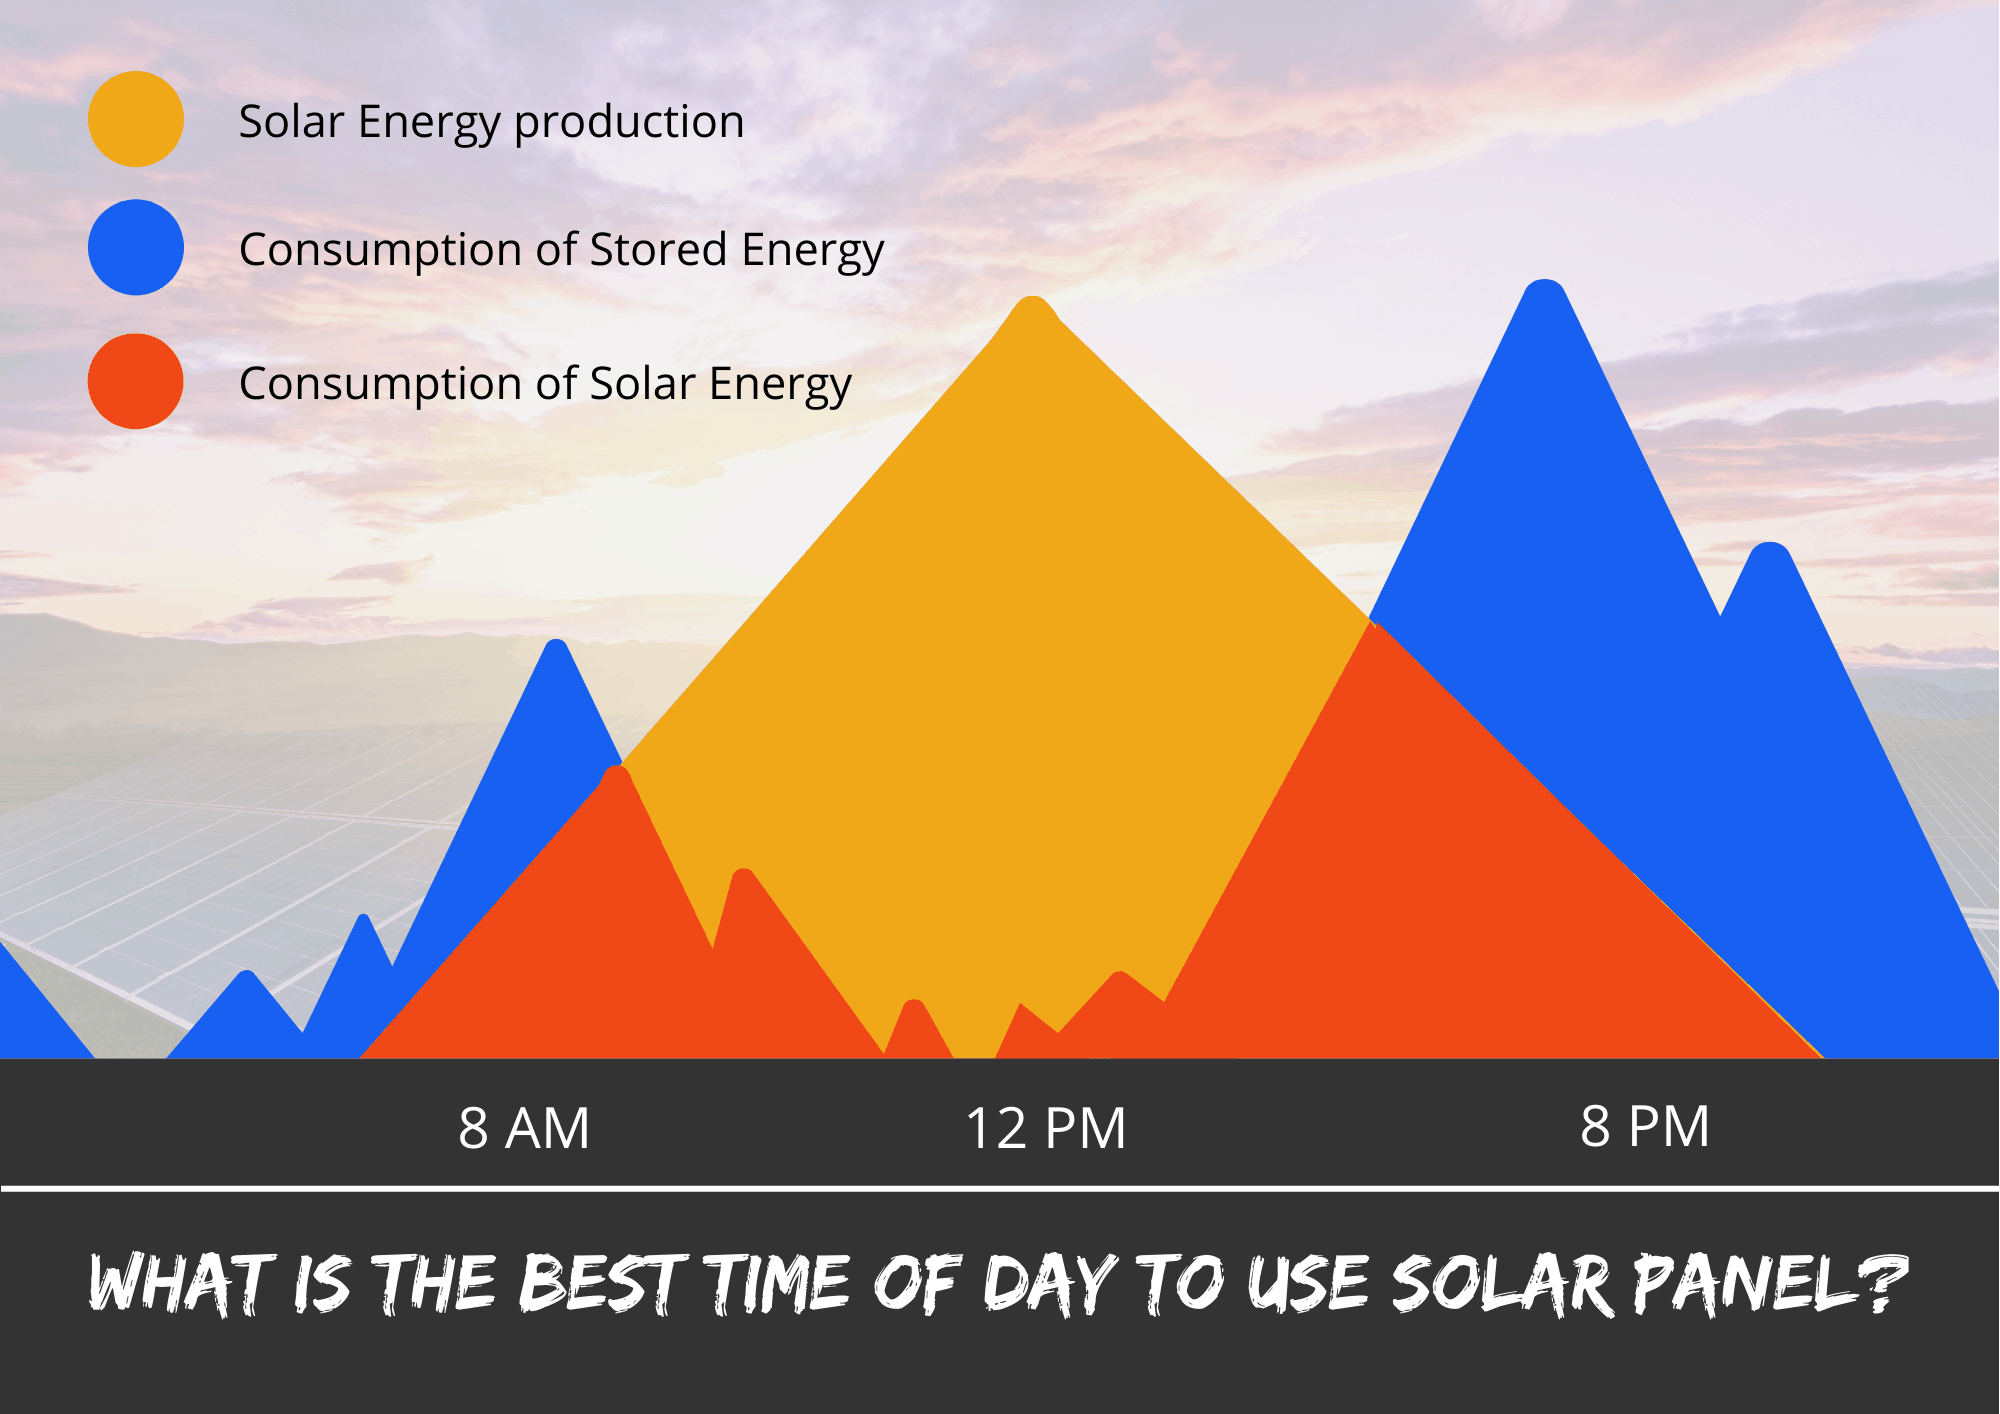 What is the best time of day to use my solar panel?